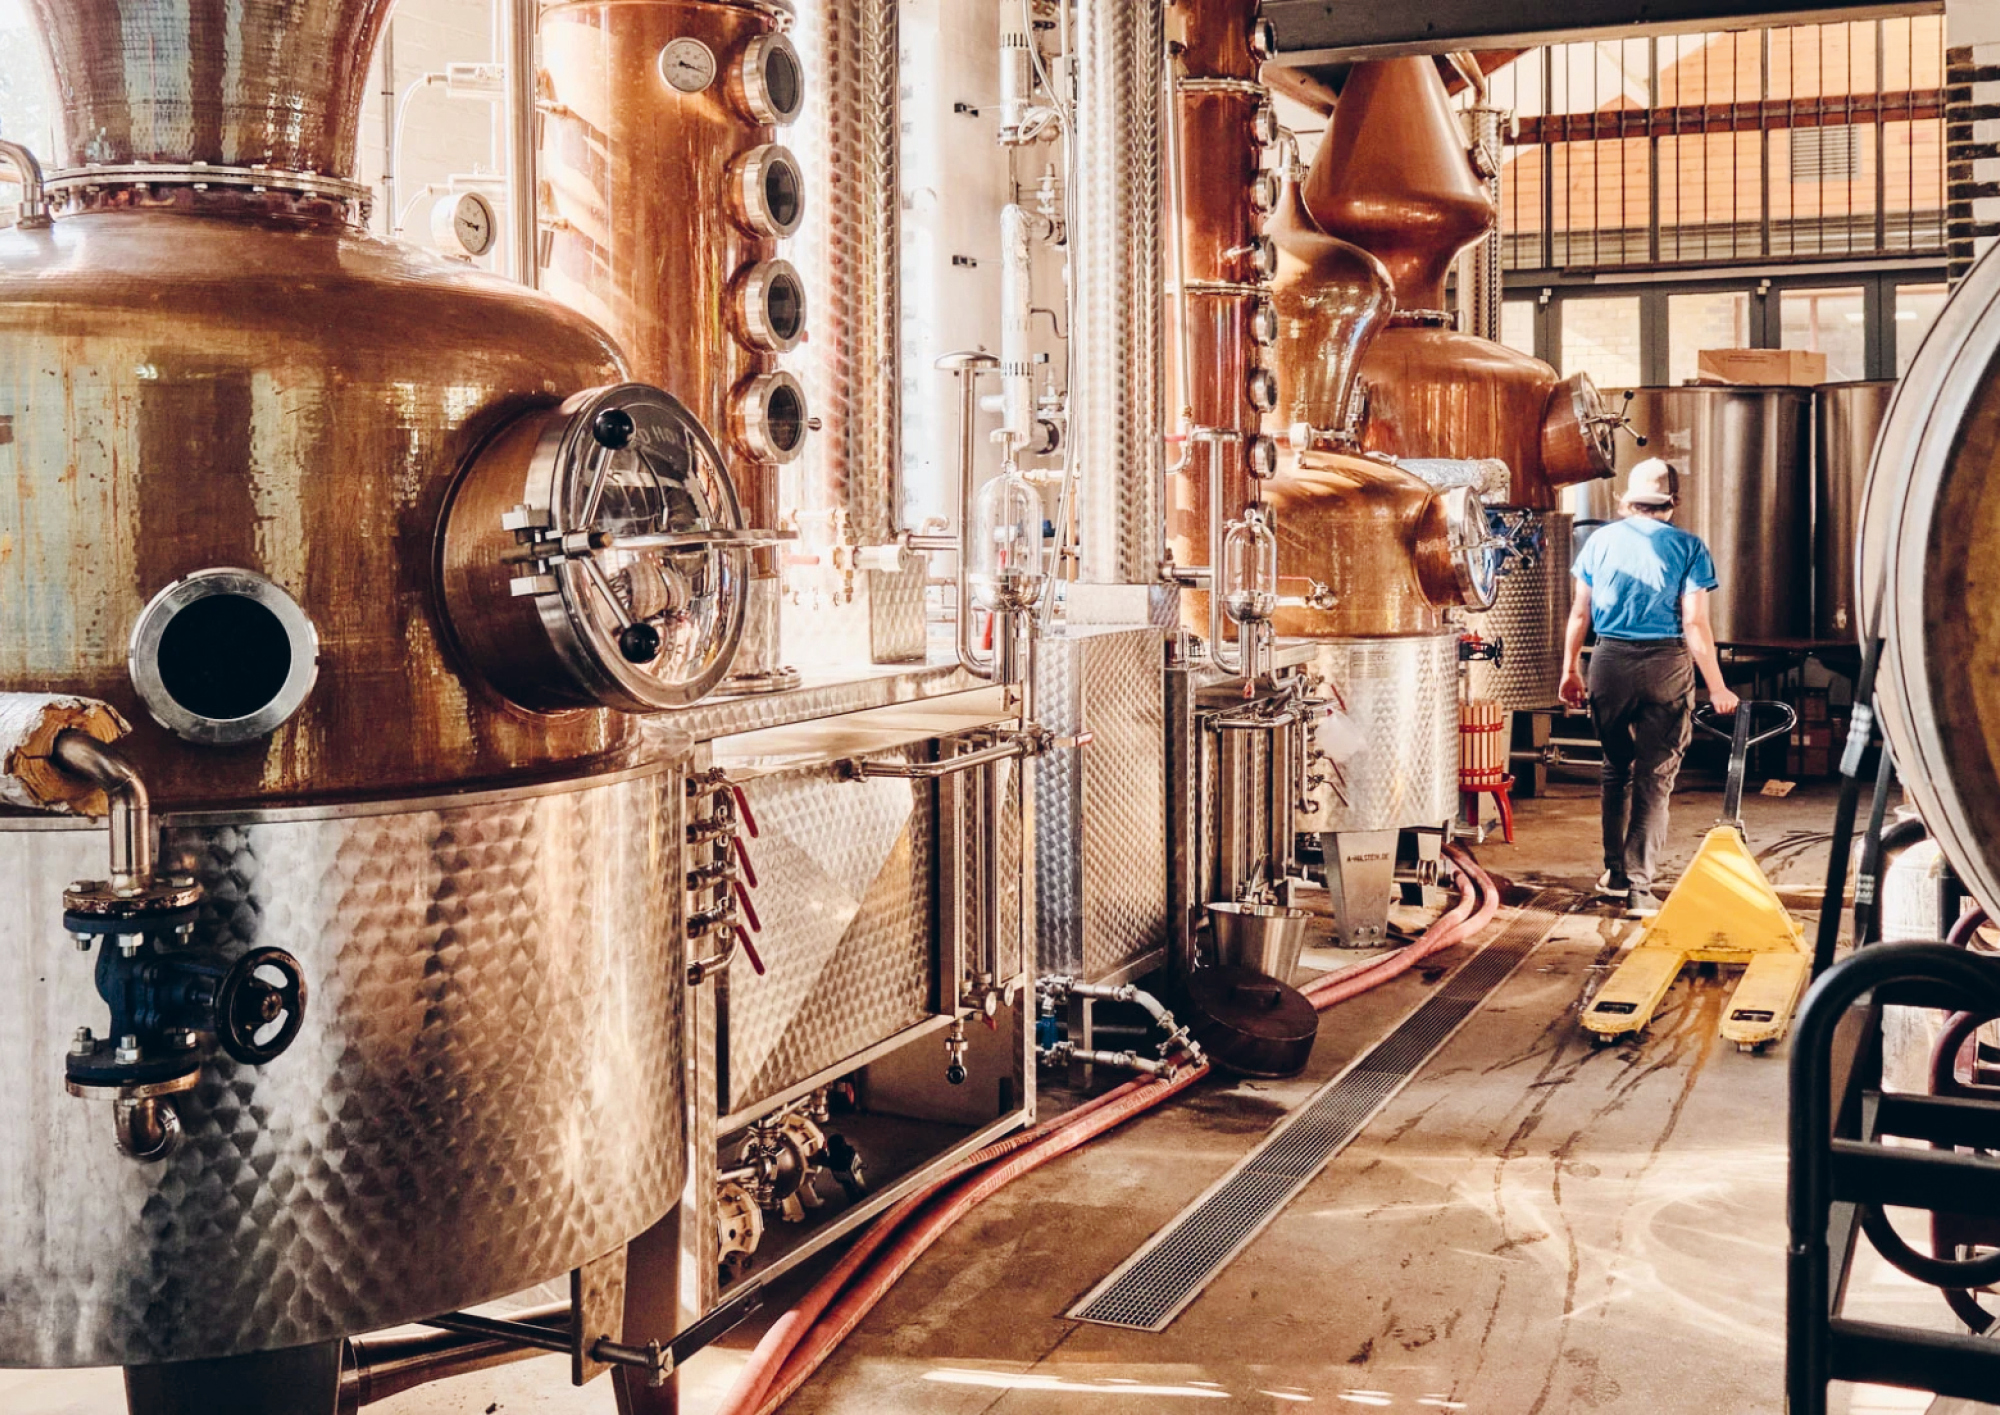 The distillery in London's Bow hopes to lay down 250 casks of its whisky each year by 2023